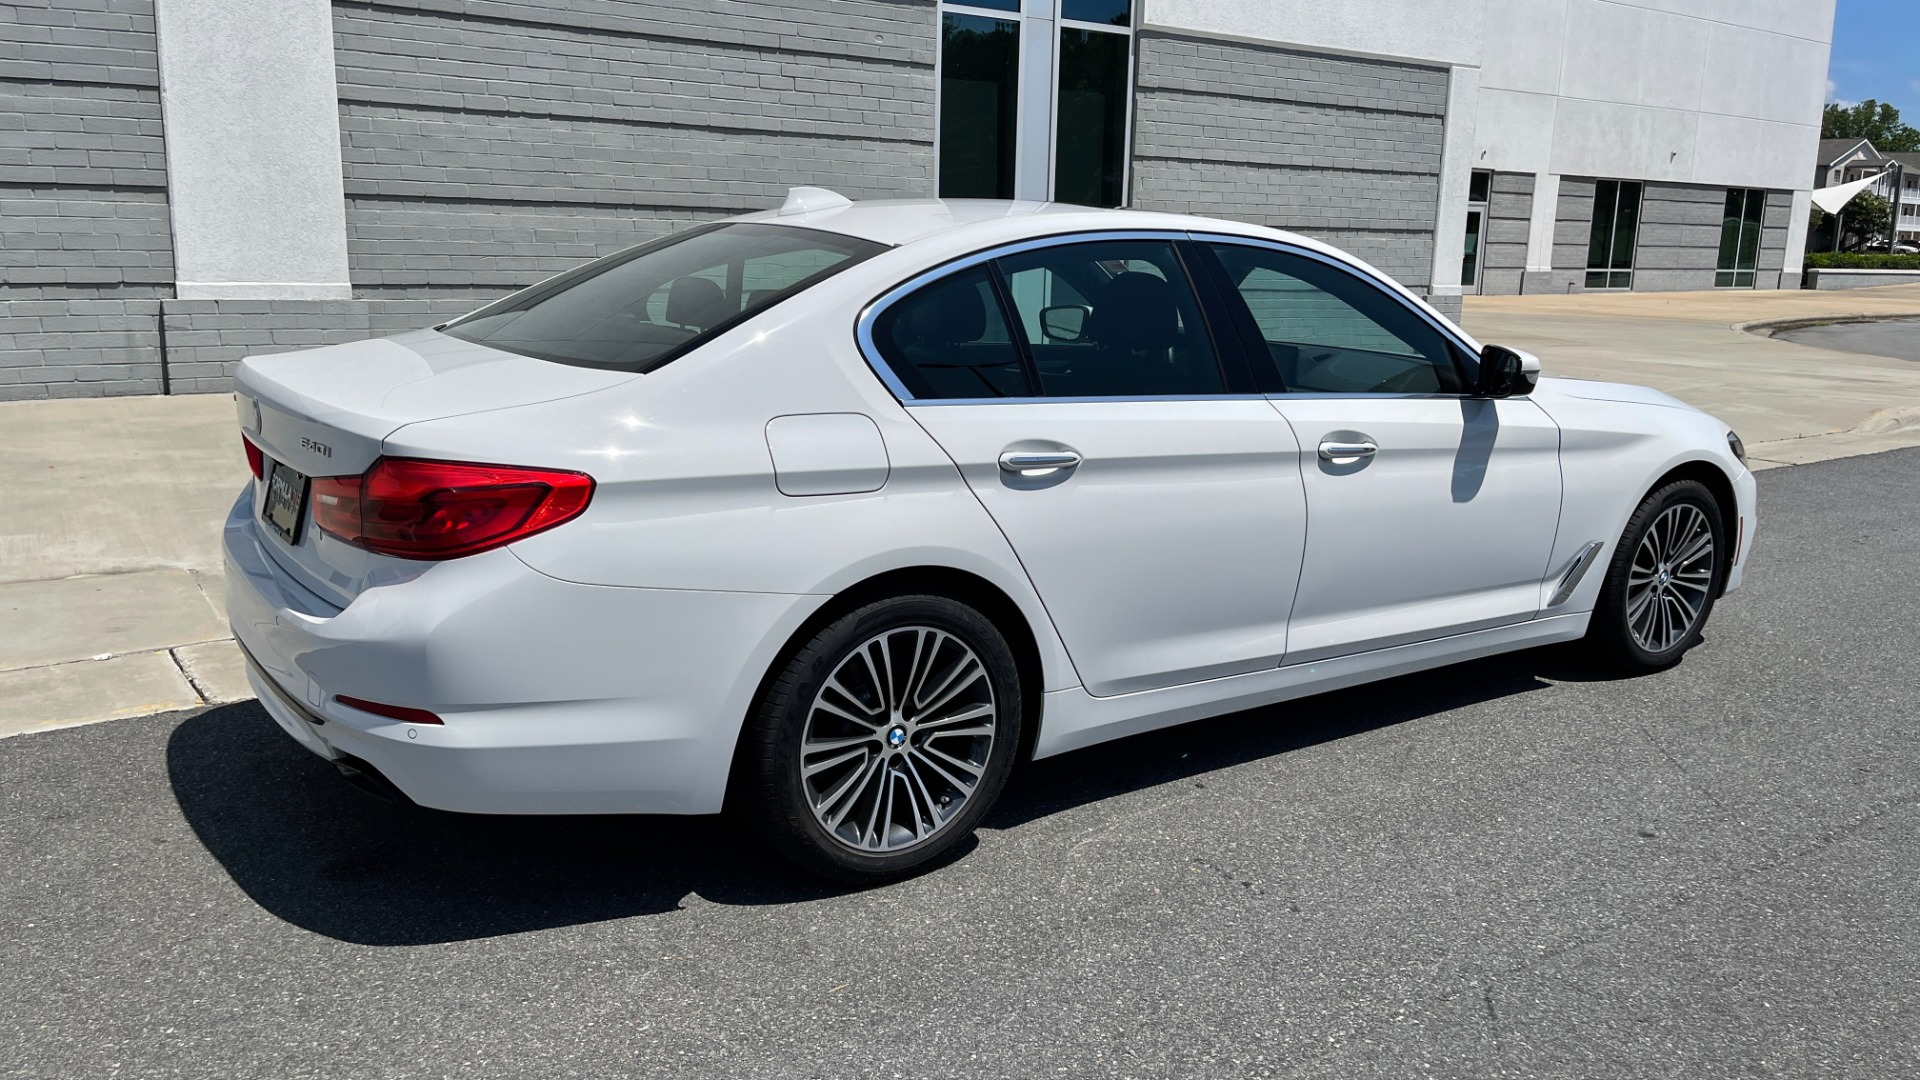 Used 2018 BMW 5 SERIES 540IXDRIVE PREMIUM / PARK ASSIST / KEYLESS ENTRY / SUNROOF / REARVIEW for sale $42,995 at Formula Imports in Charlotte NC 28227 2